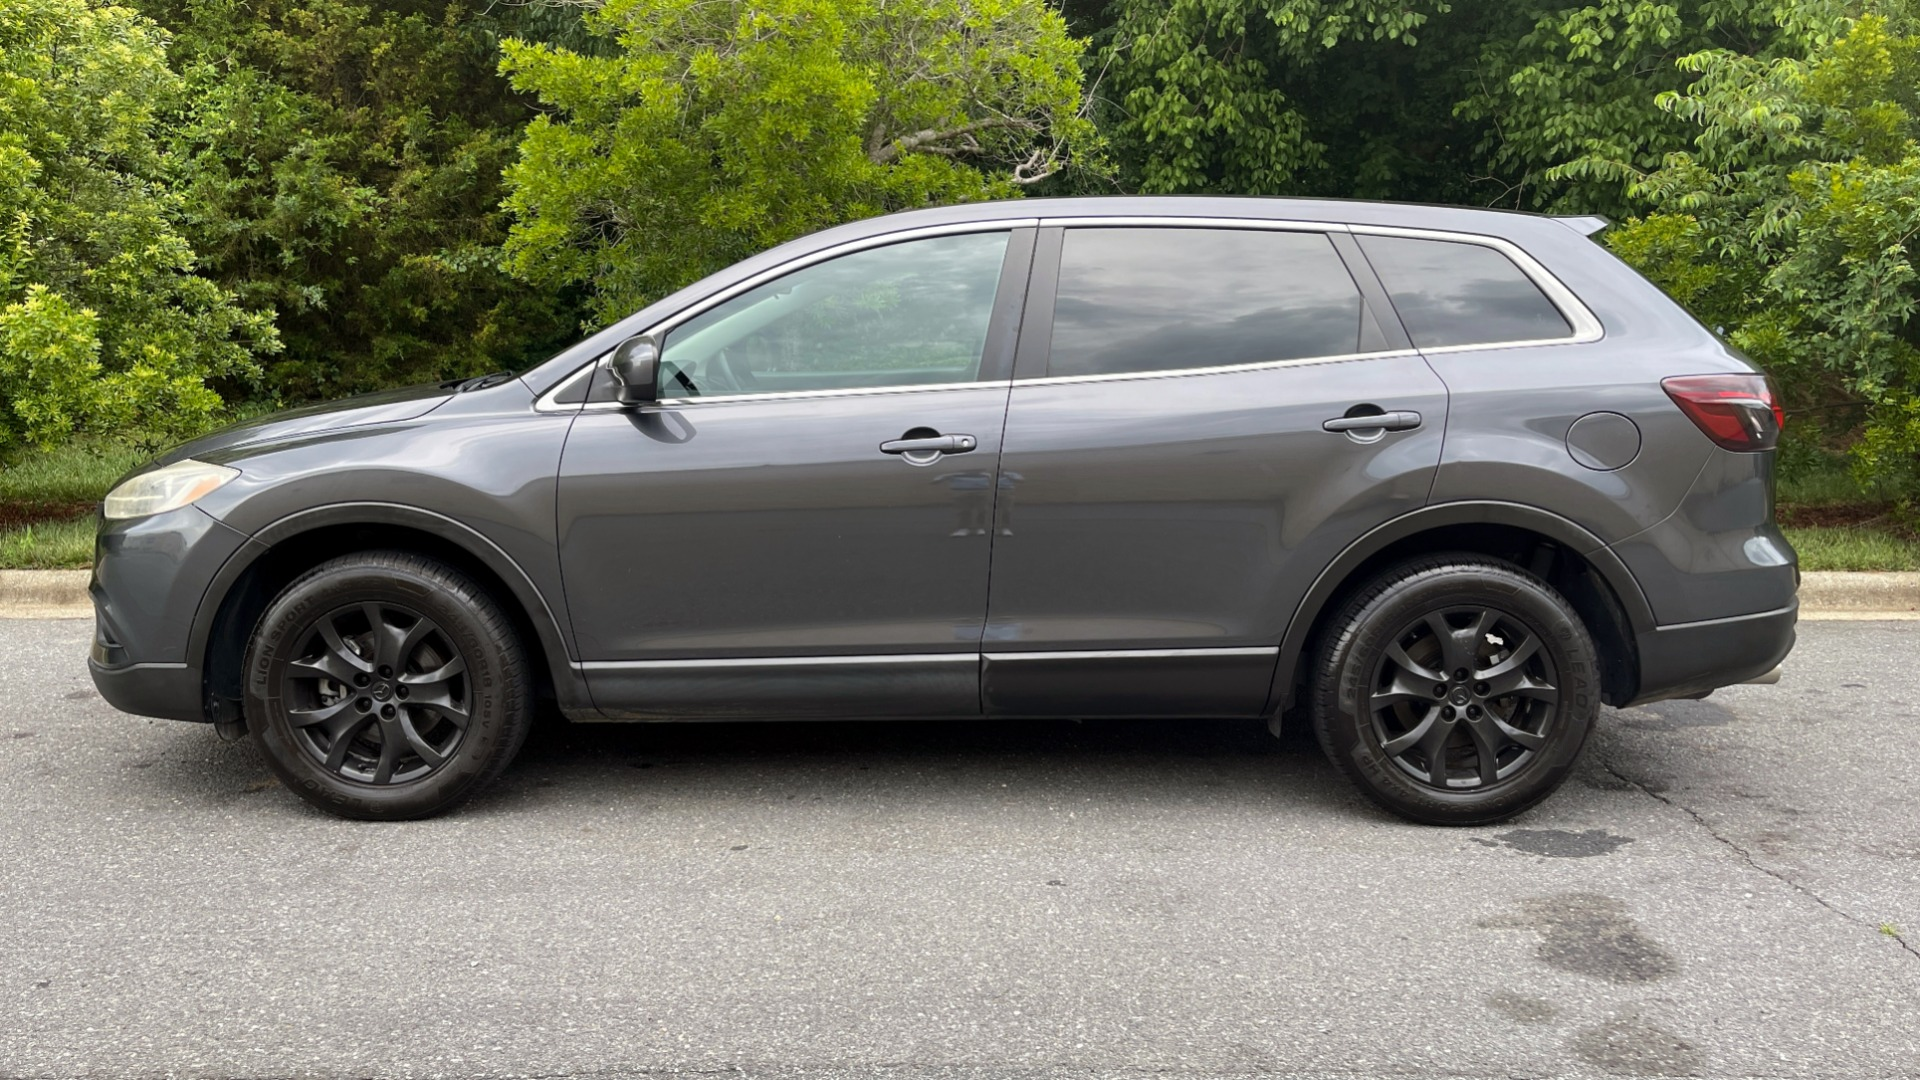 Used 2014 Mazda CX-9 TOURUNG / FWD / 3.7L V6 / 6-SPD AUTO / HTD STS / 3-ROW / REARVIEW for sale $14,995 at Formula Imports in Charlotte NC 28227 3